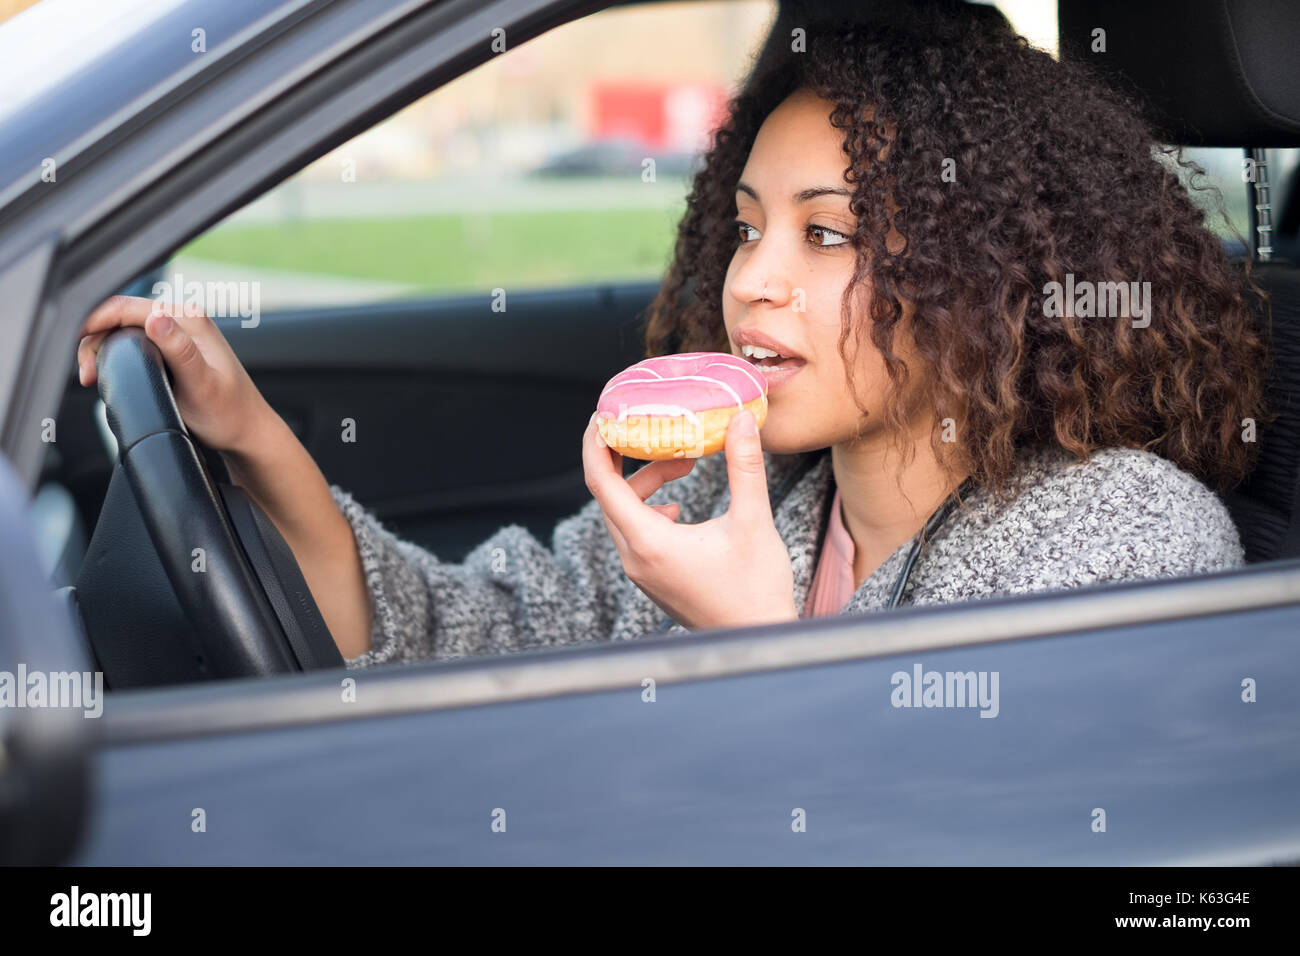 Woman eating a sweet driving her car - Stock Image